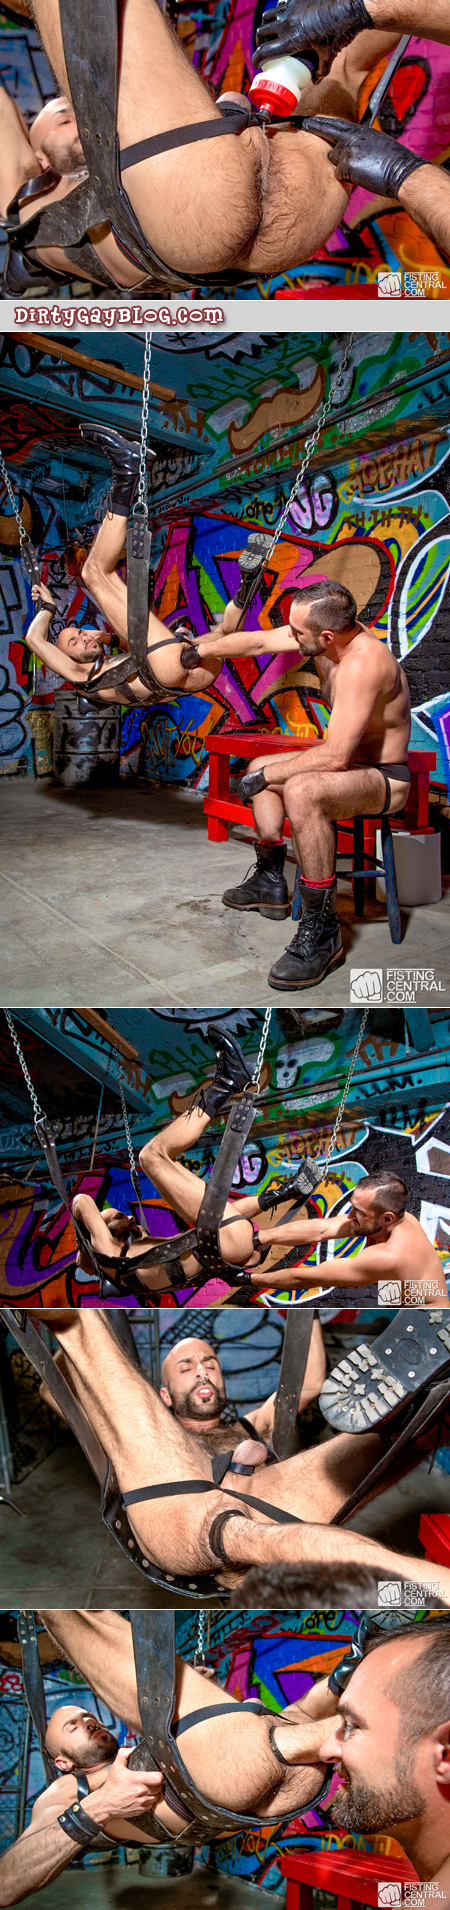 Pierced fisting pig gets fisted in a leather sling by a muscular bearded man.